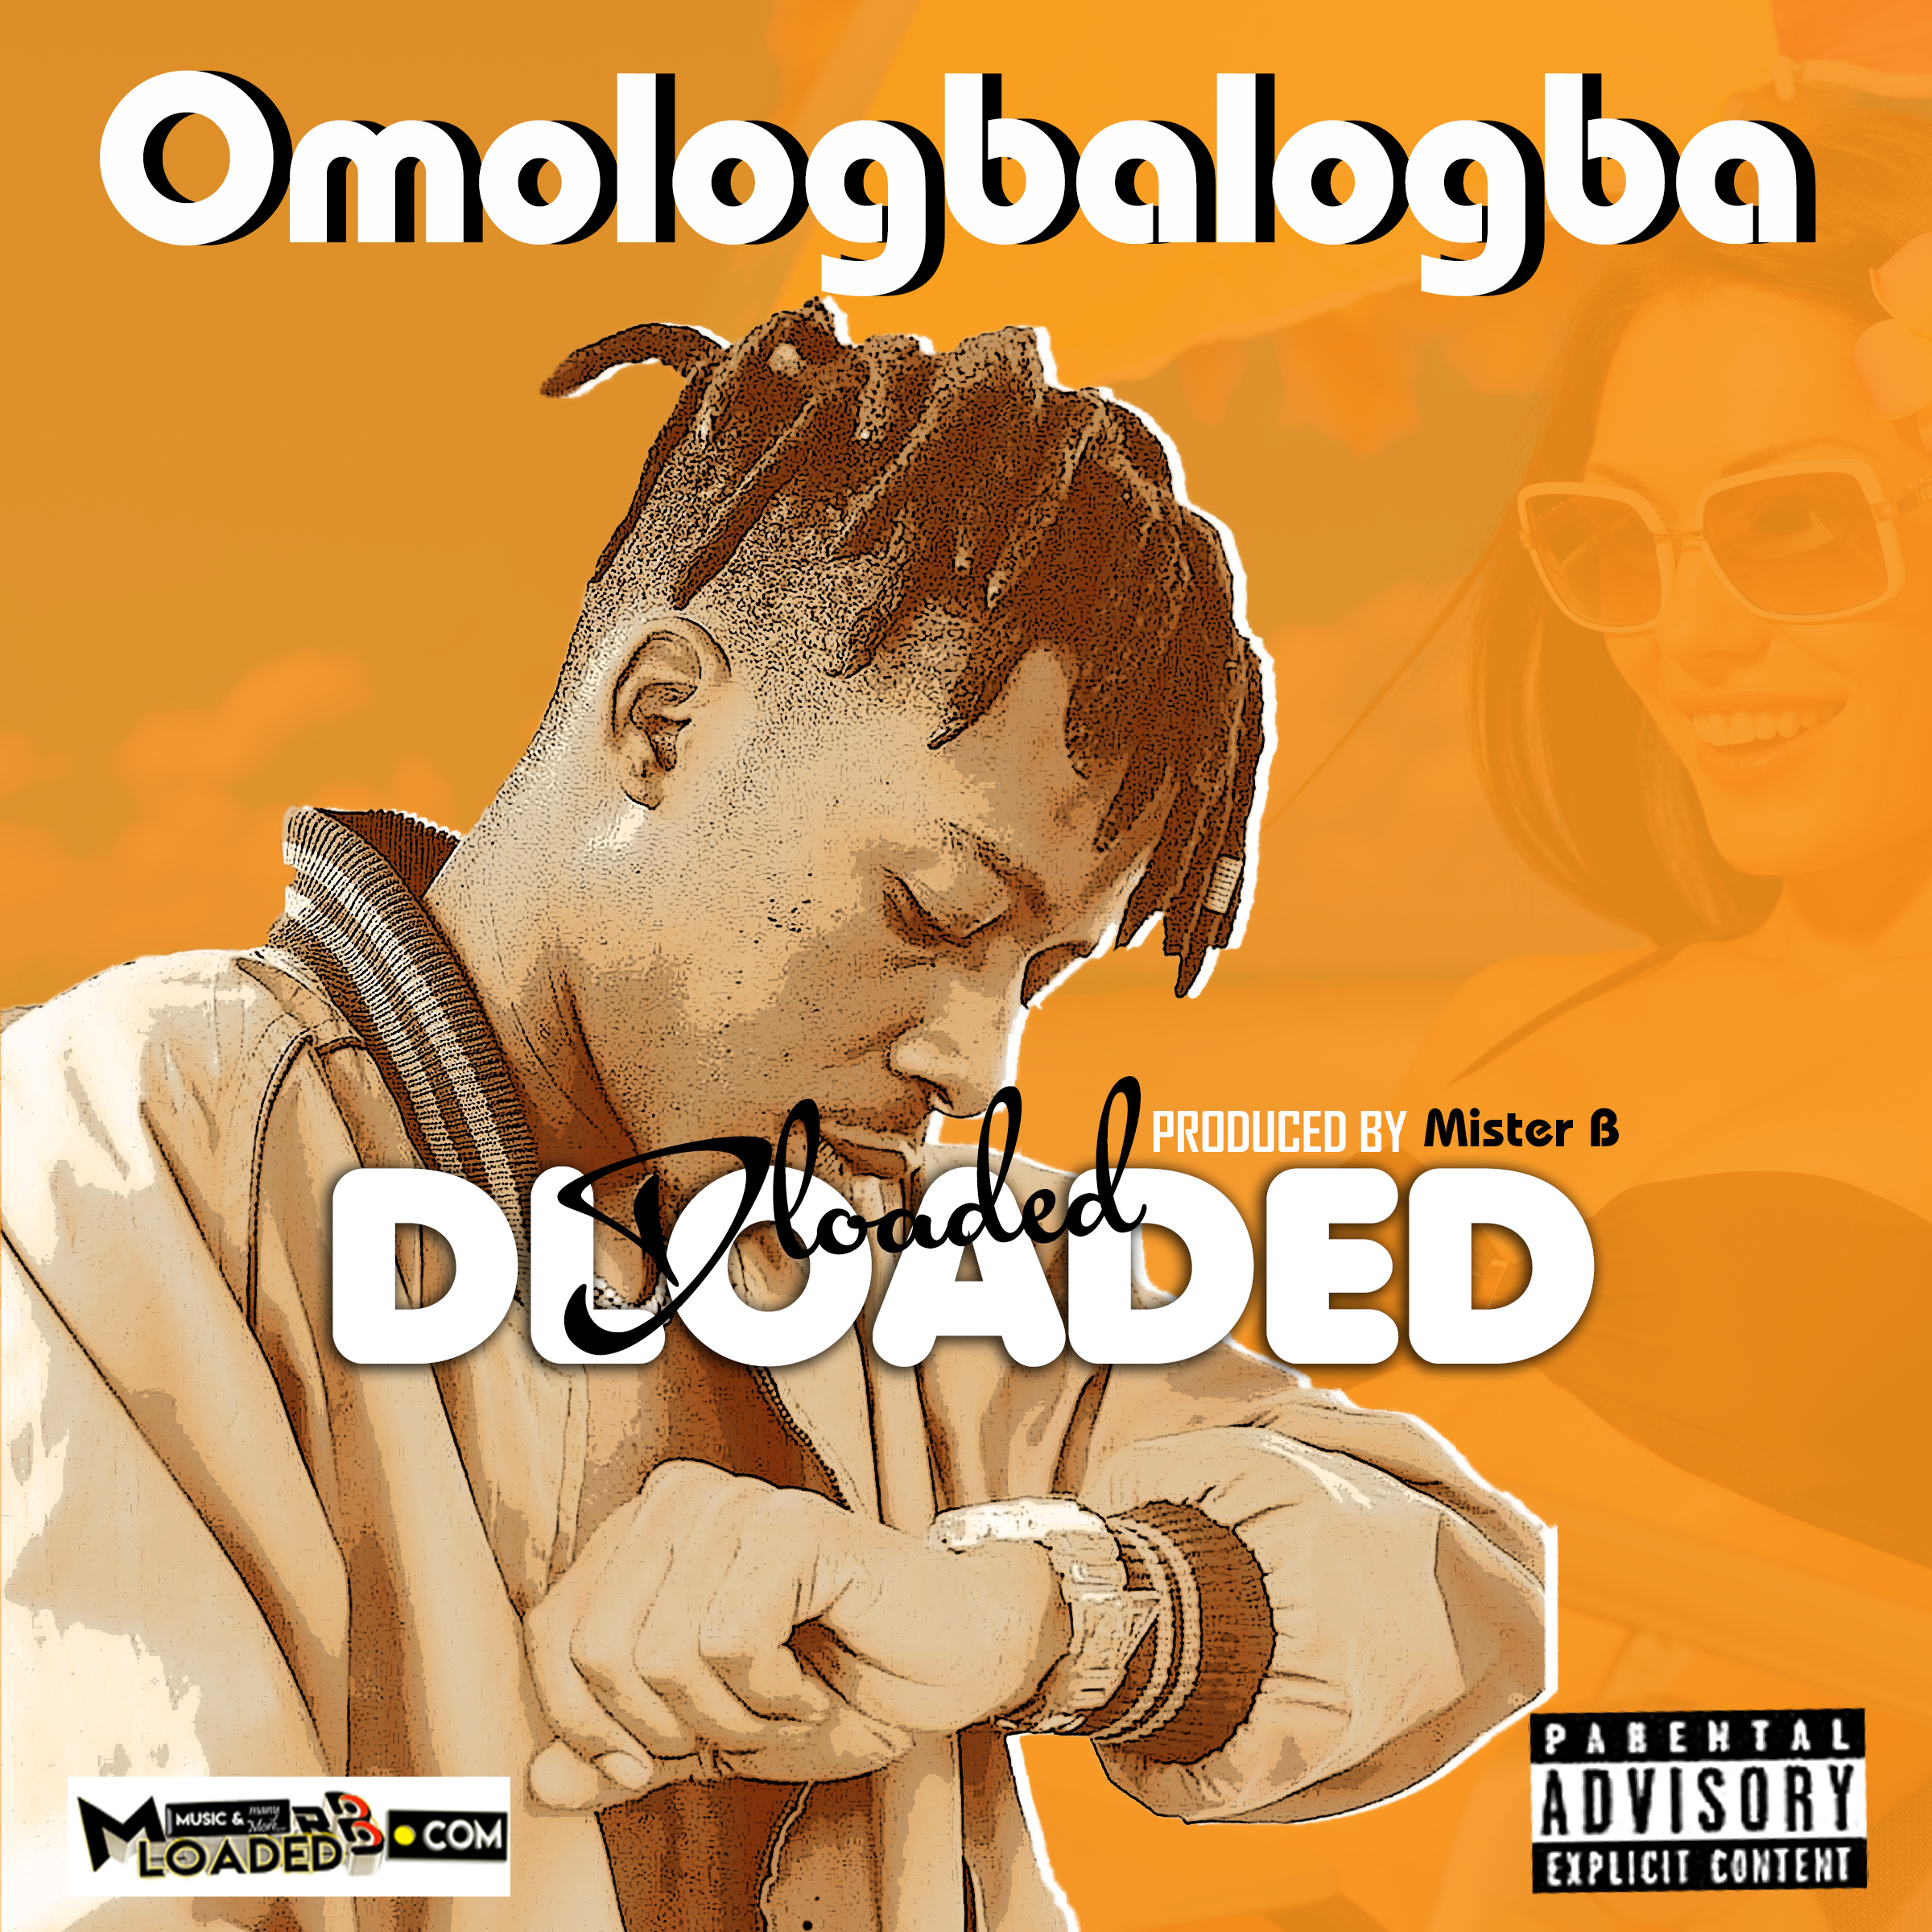 [Music] DLOADED – Omologbalogba (Prod. By Mister B)